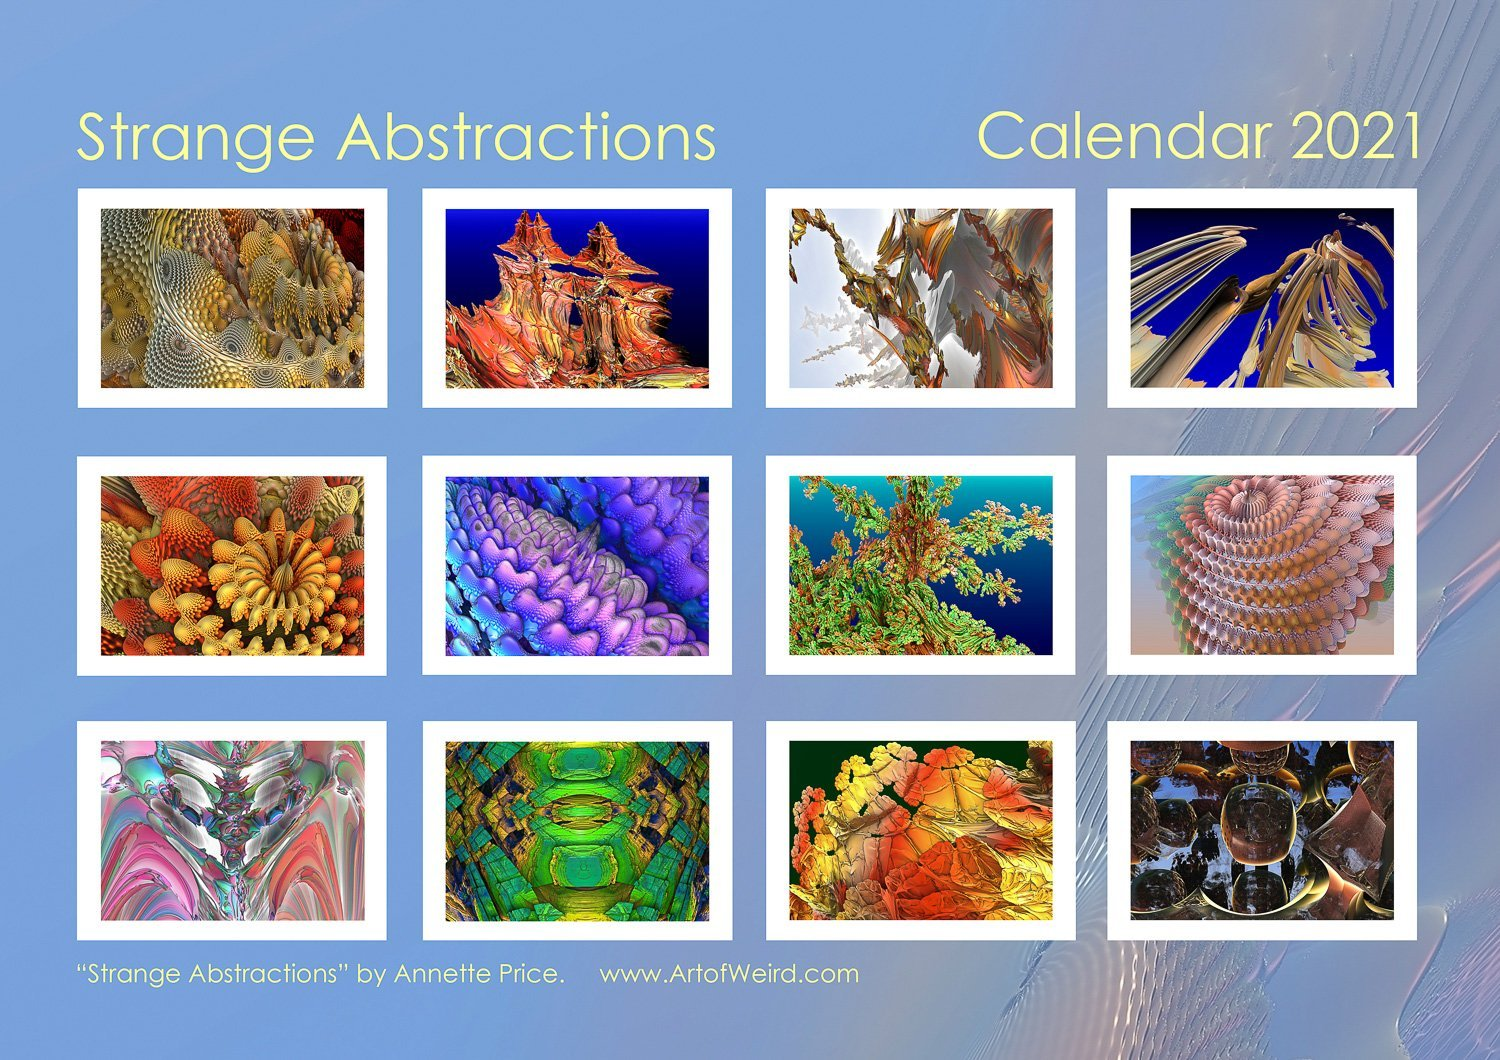 Back cover. Strange Abstractions Calendar 2021